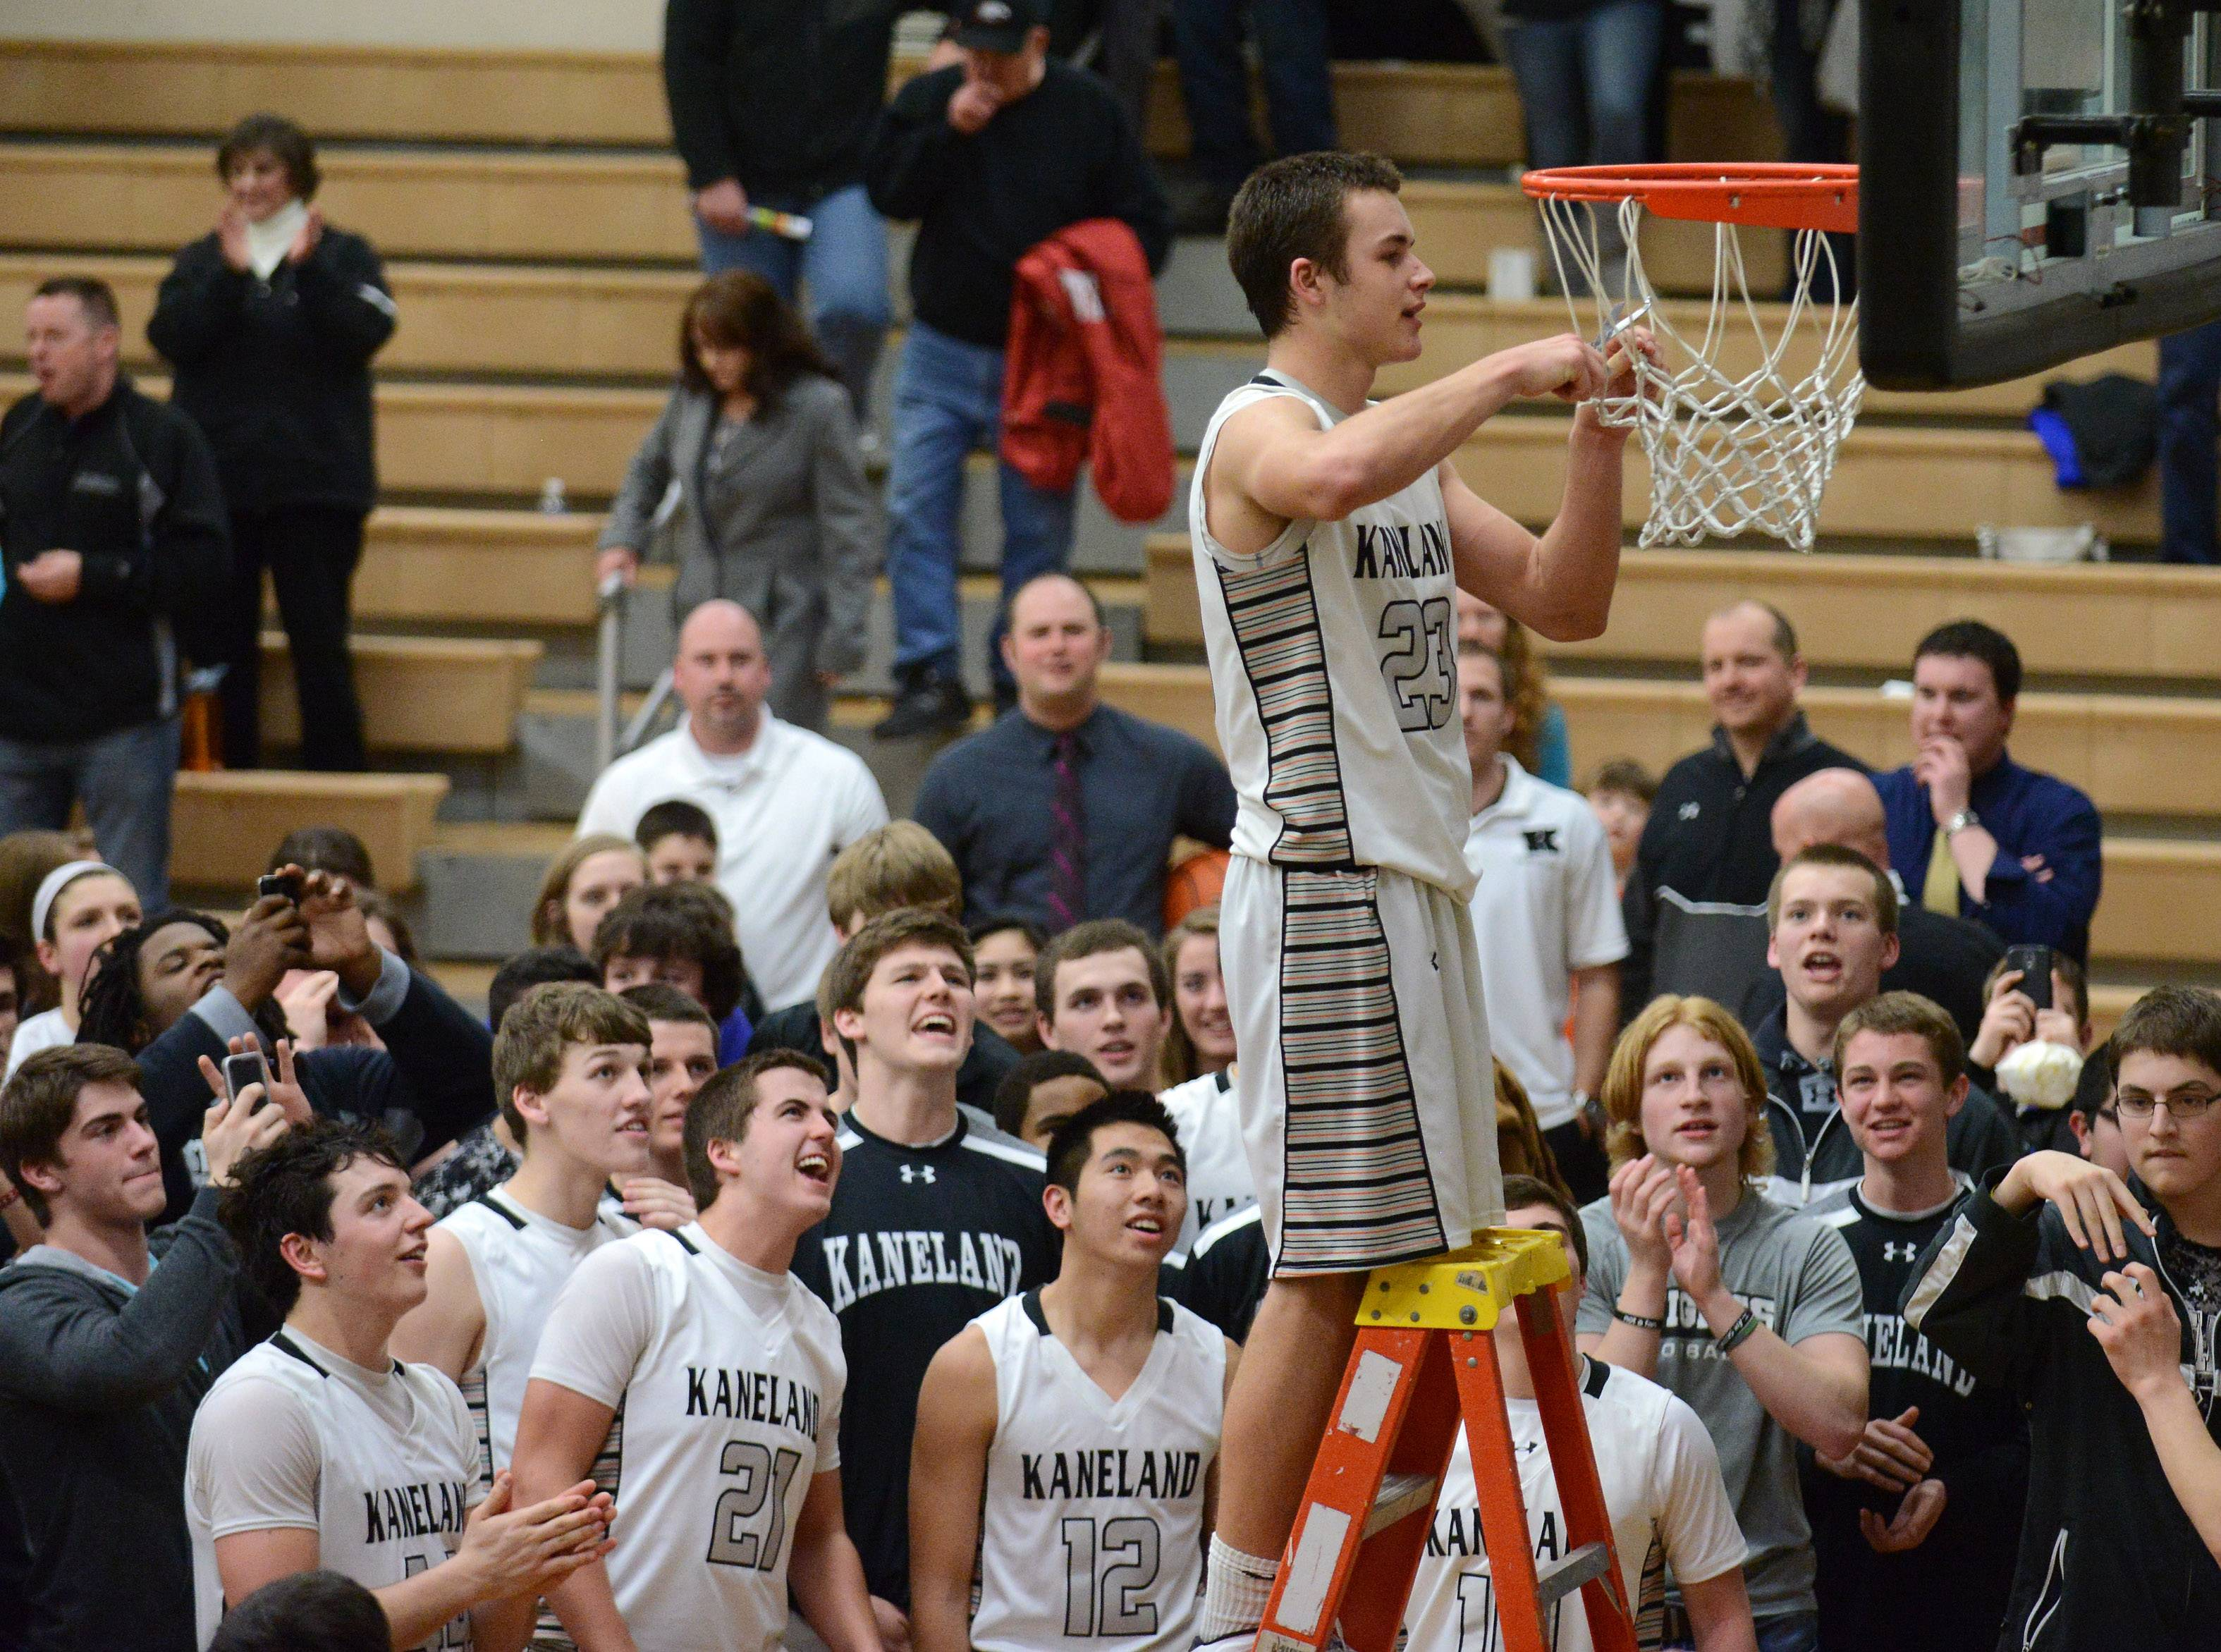 Images from the Kaneland vs. Marmion regional boys basketball title game Friday, March 7, 2014 in Maple Park.